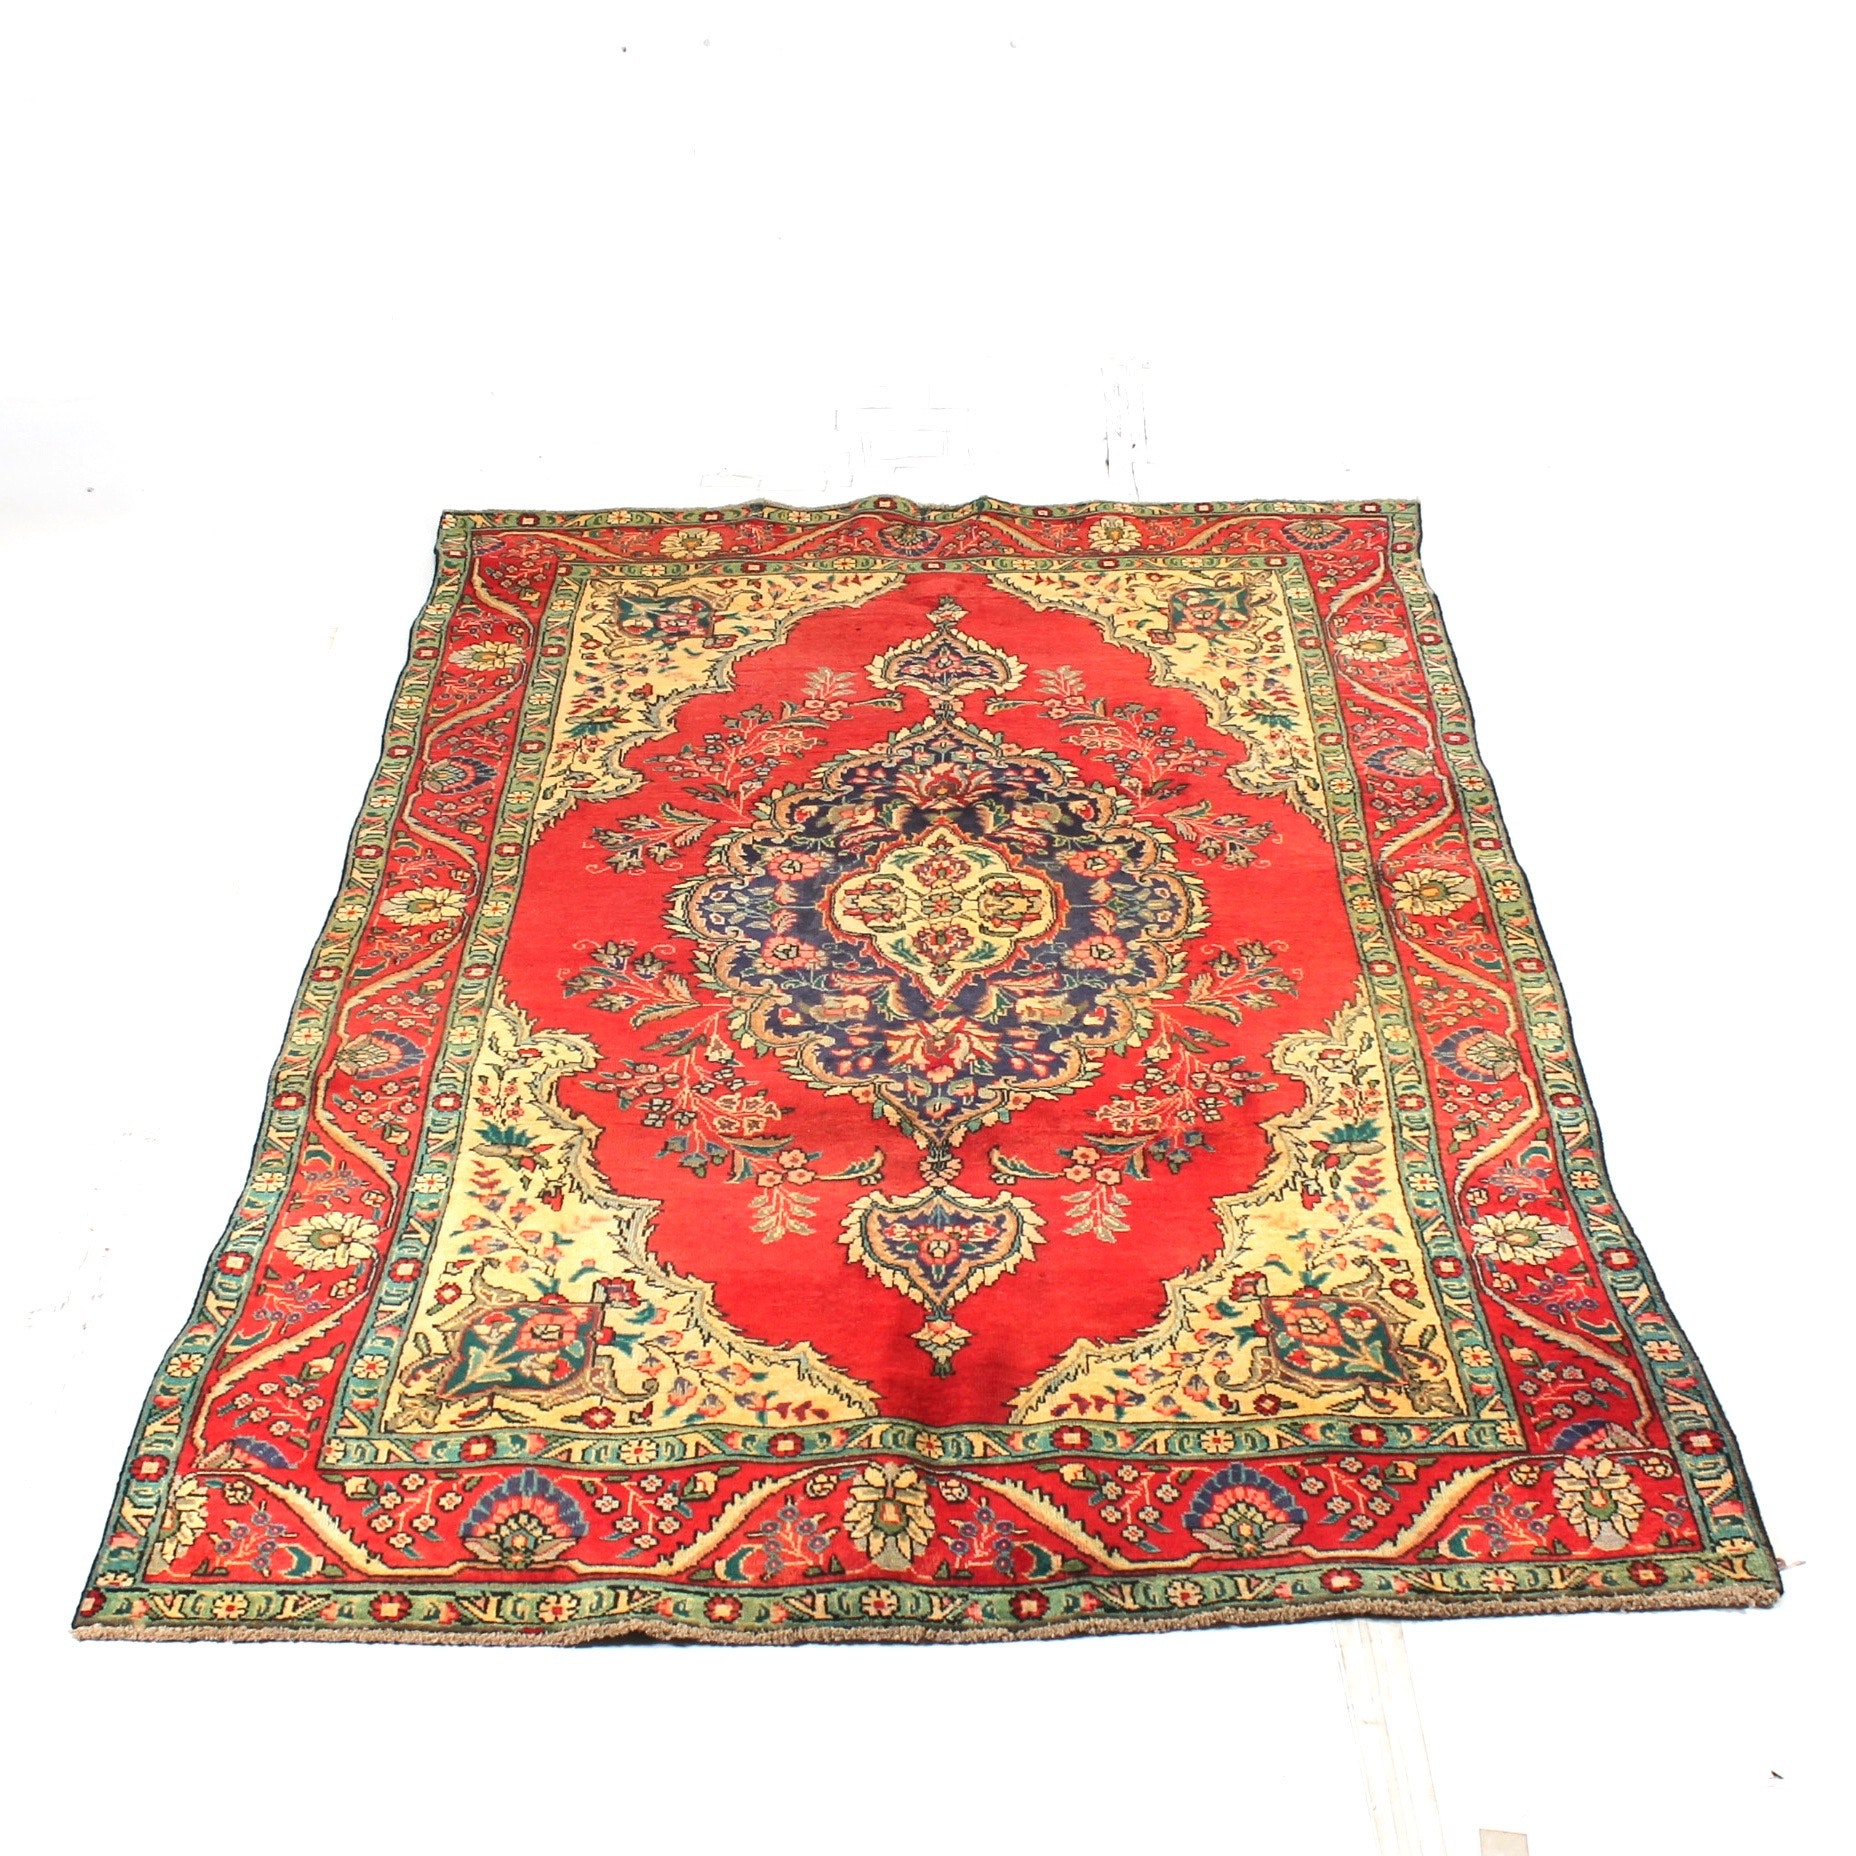 Vintage Hand-Knotted Persian Tabriz Room Size Rug